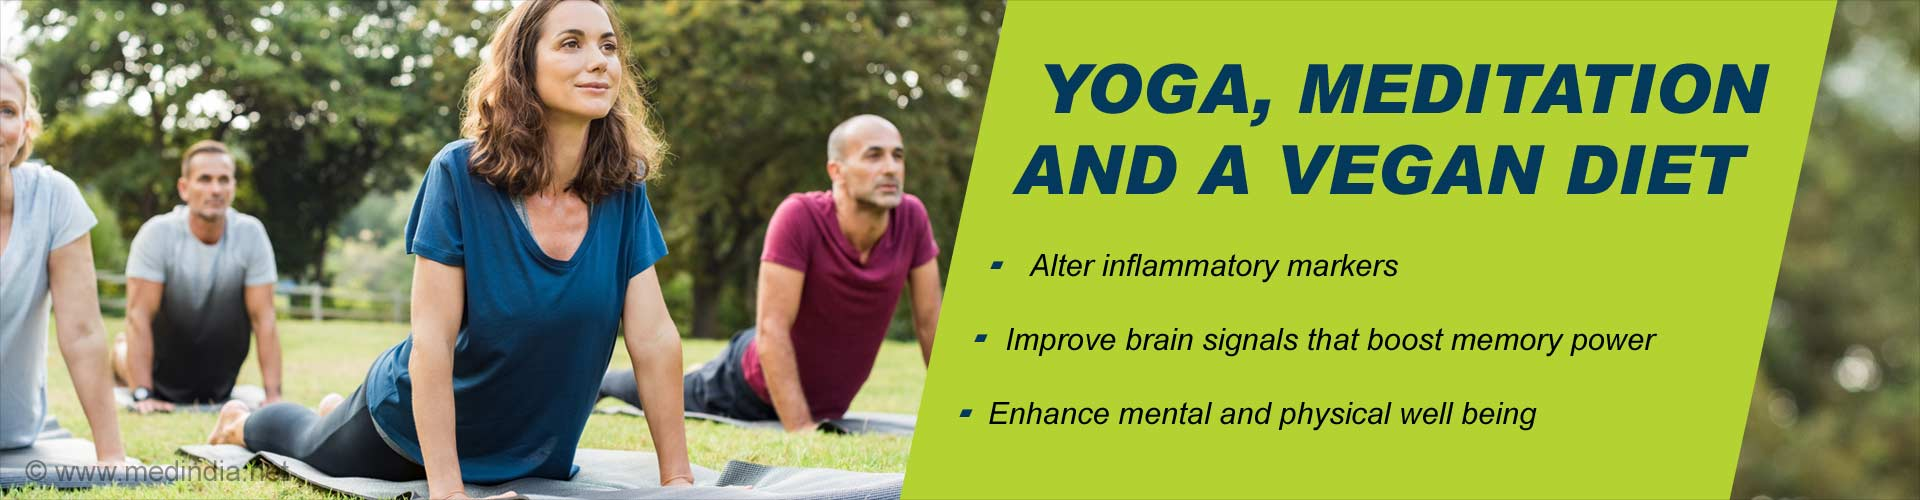 yoga, meditation, and a vegan diet - alter inflammatory markers - improve brain signals that boost memory power - enhance mental and physical well-being